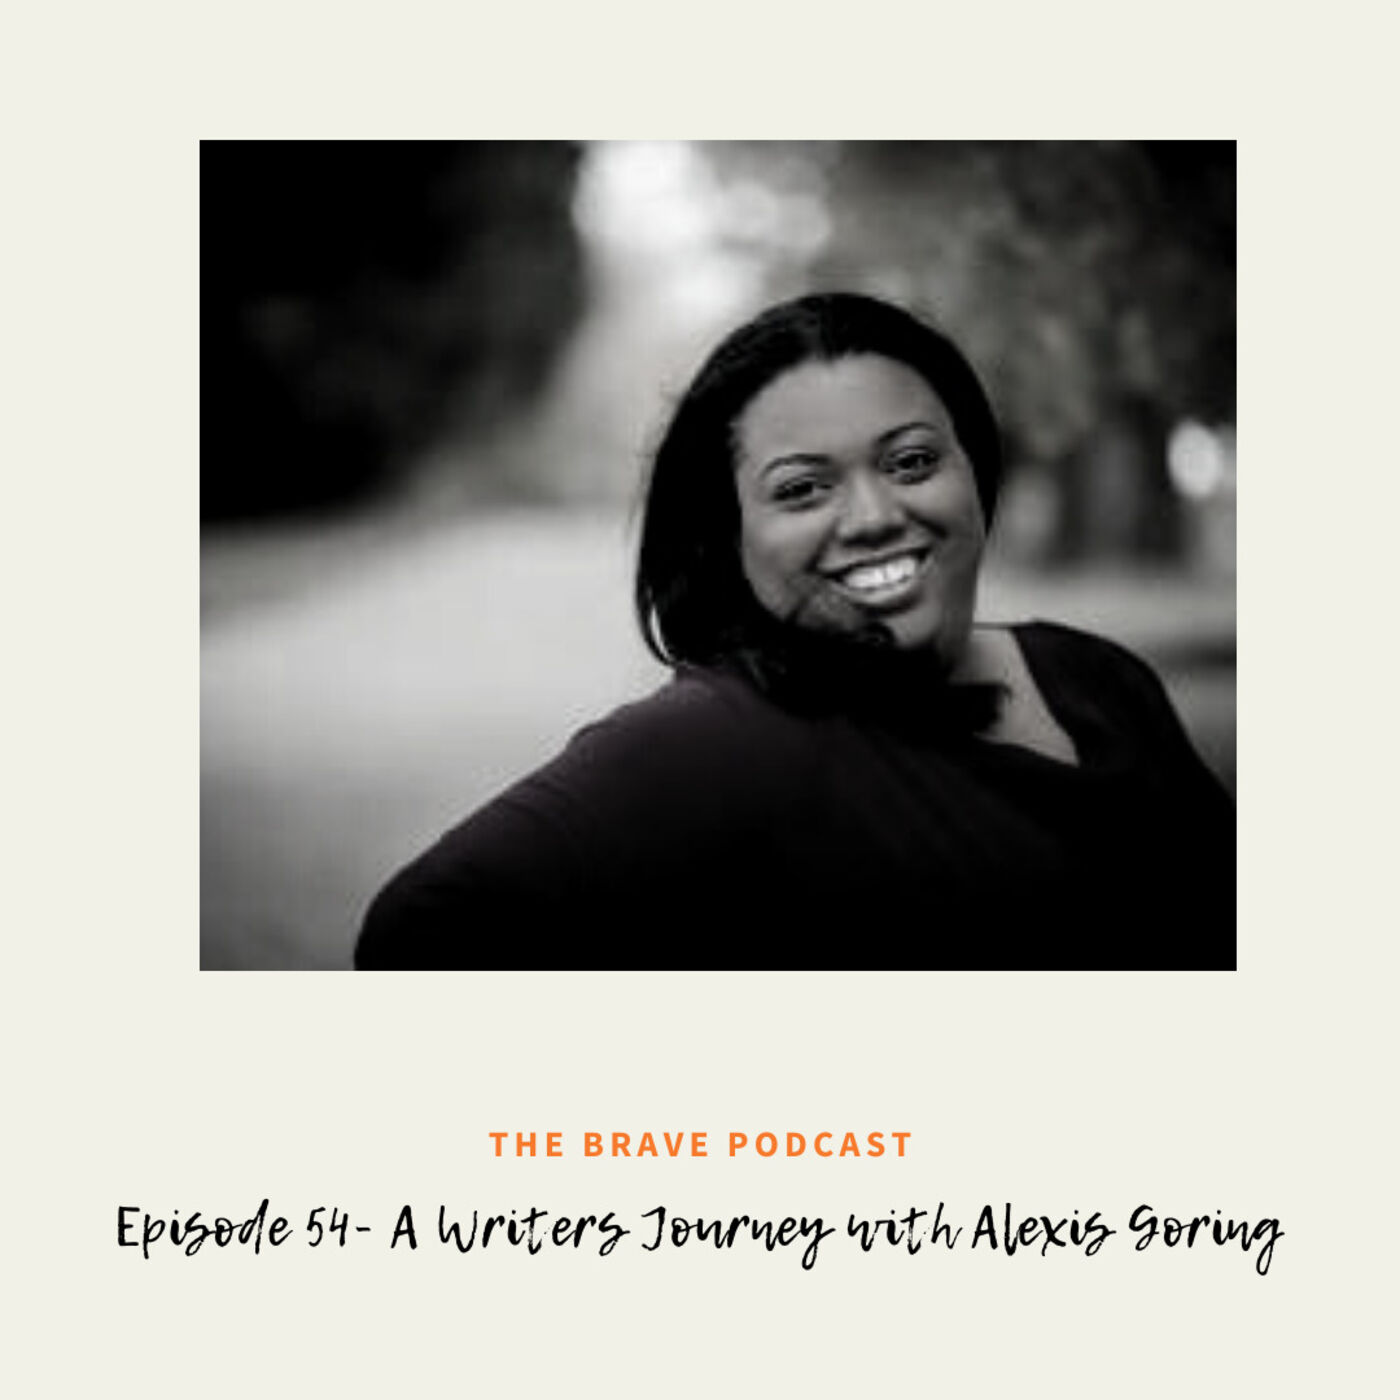 A Writers Journey with Alexis Goring